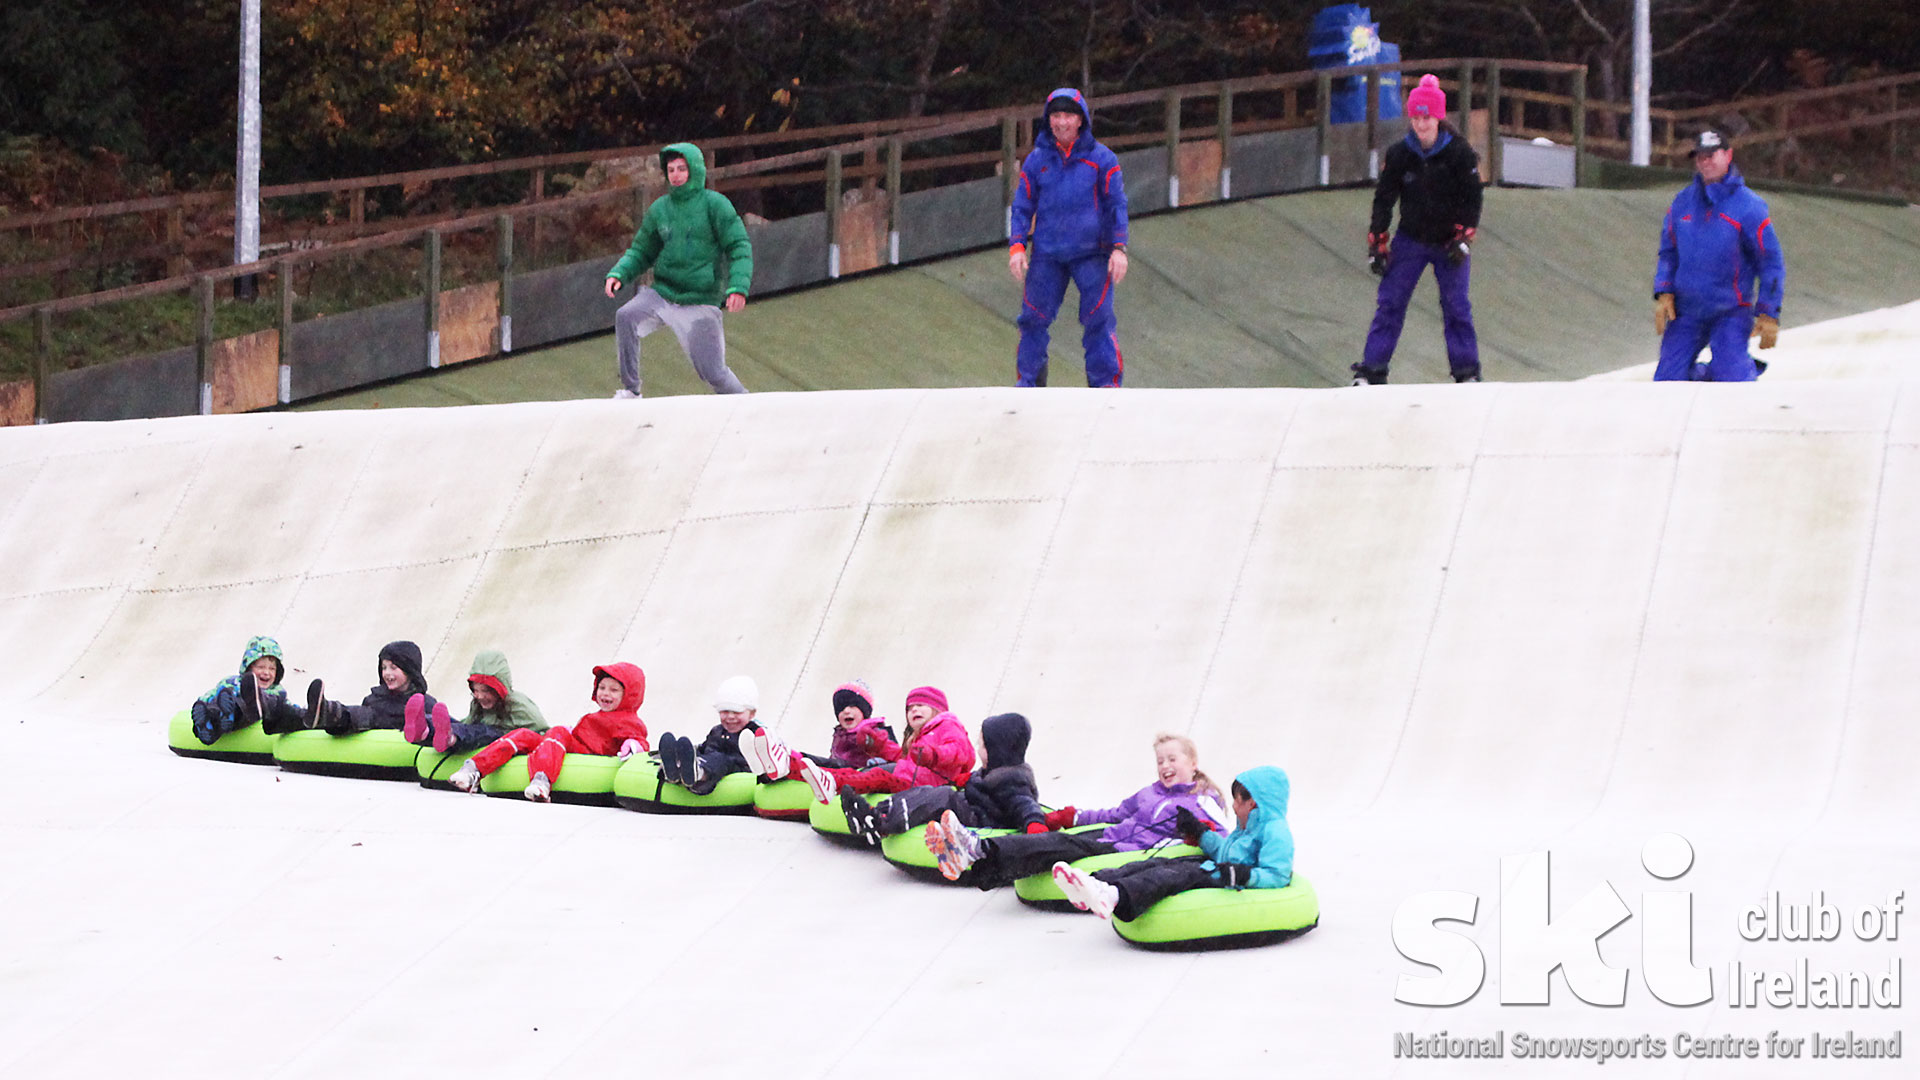 tubing together, what great fun